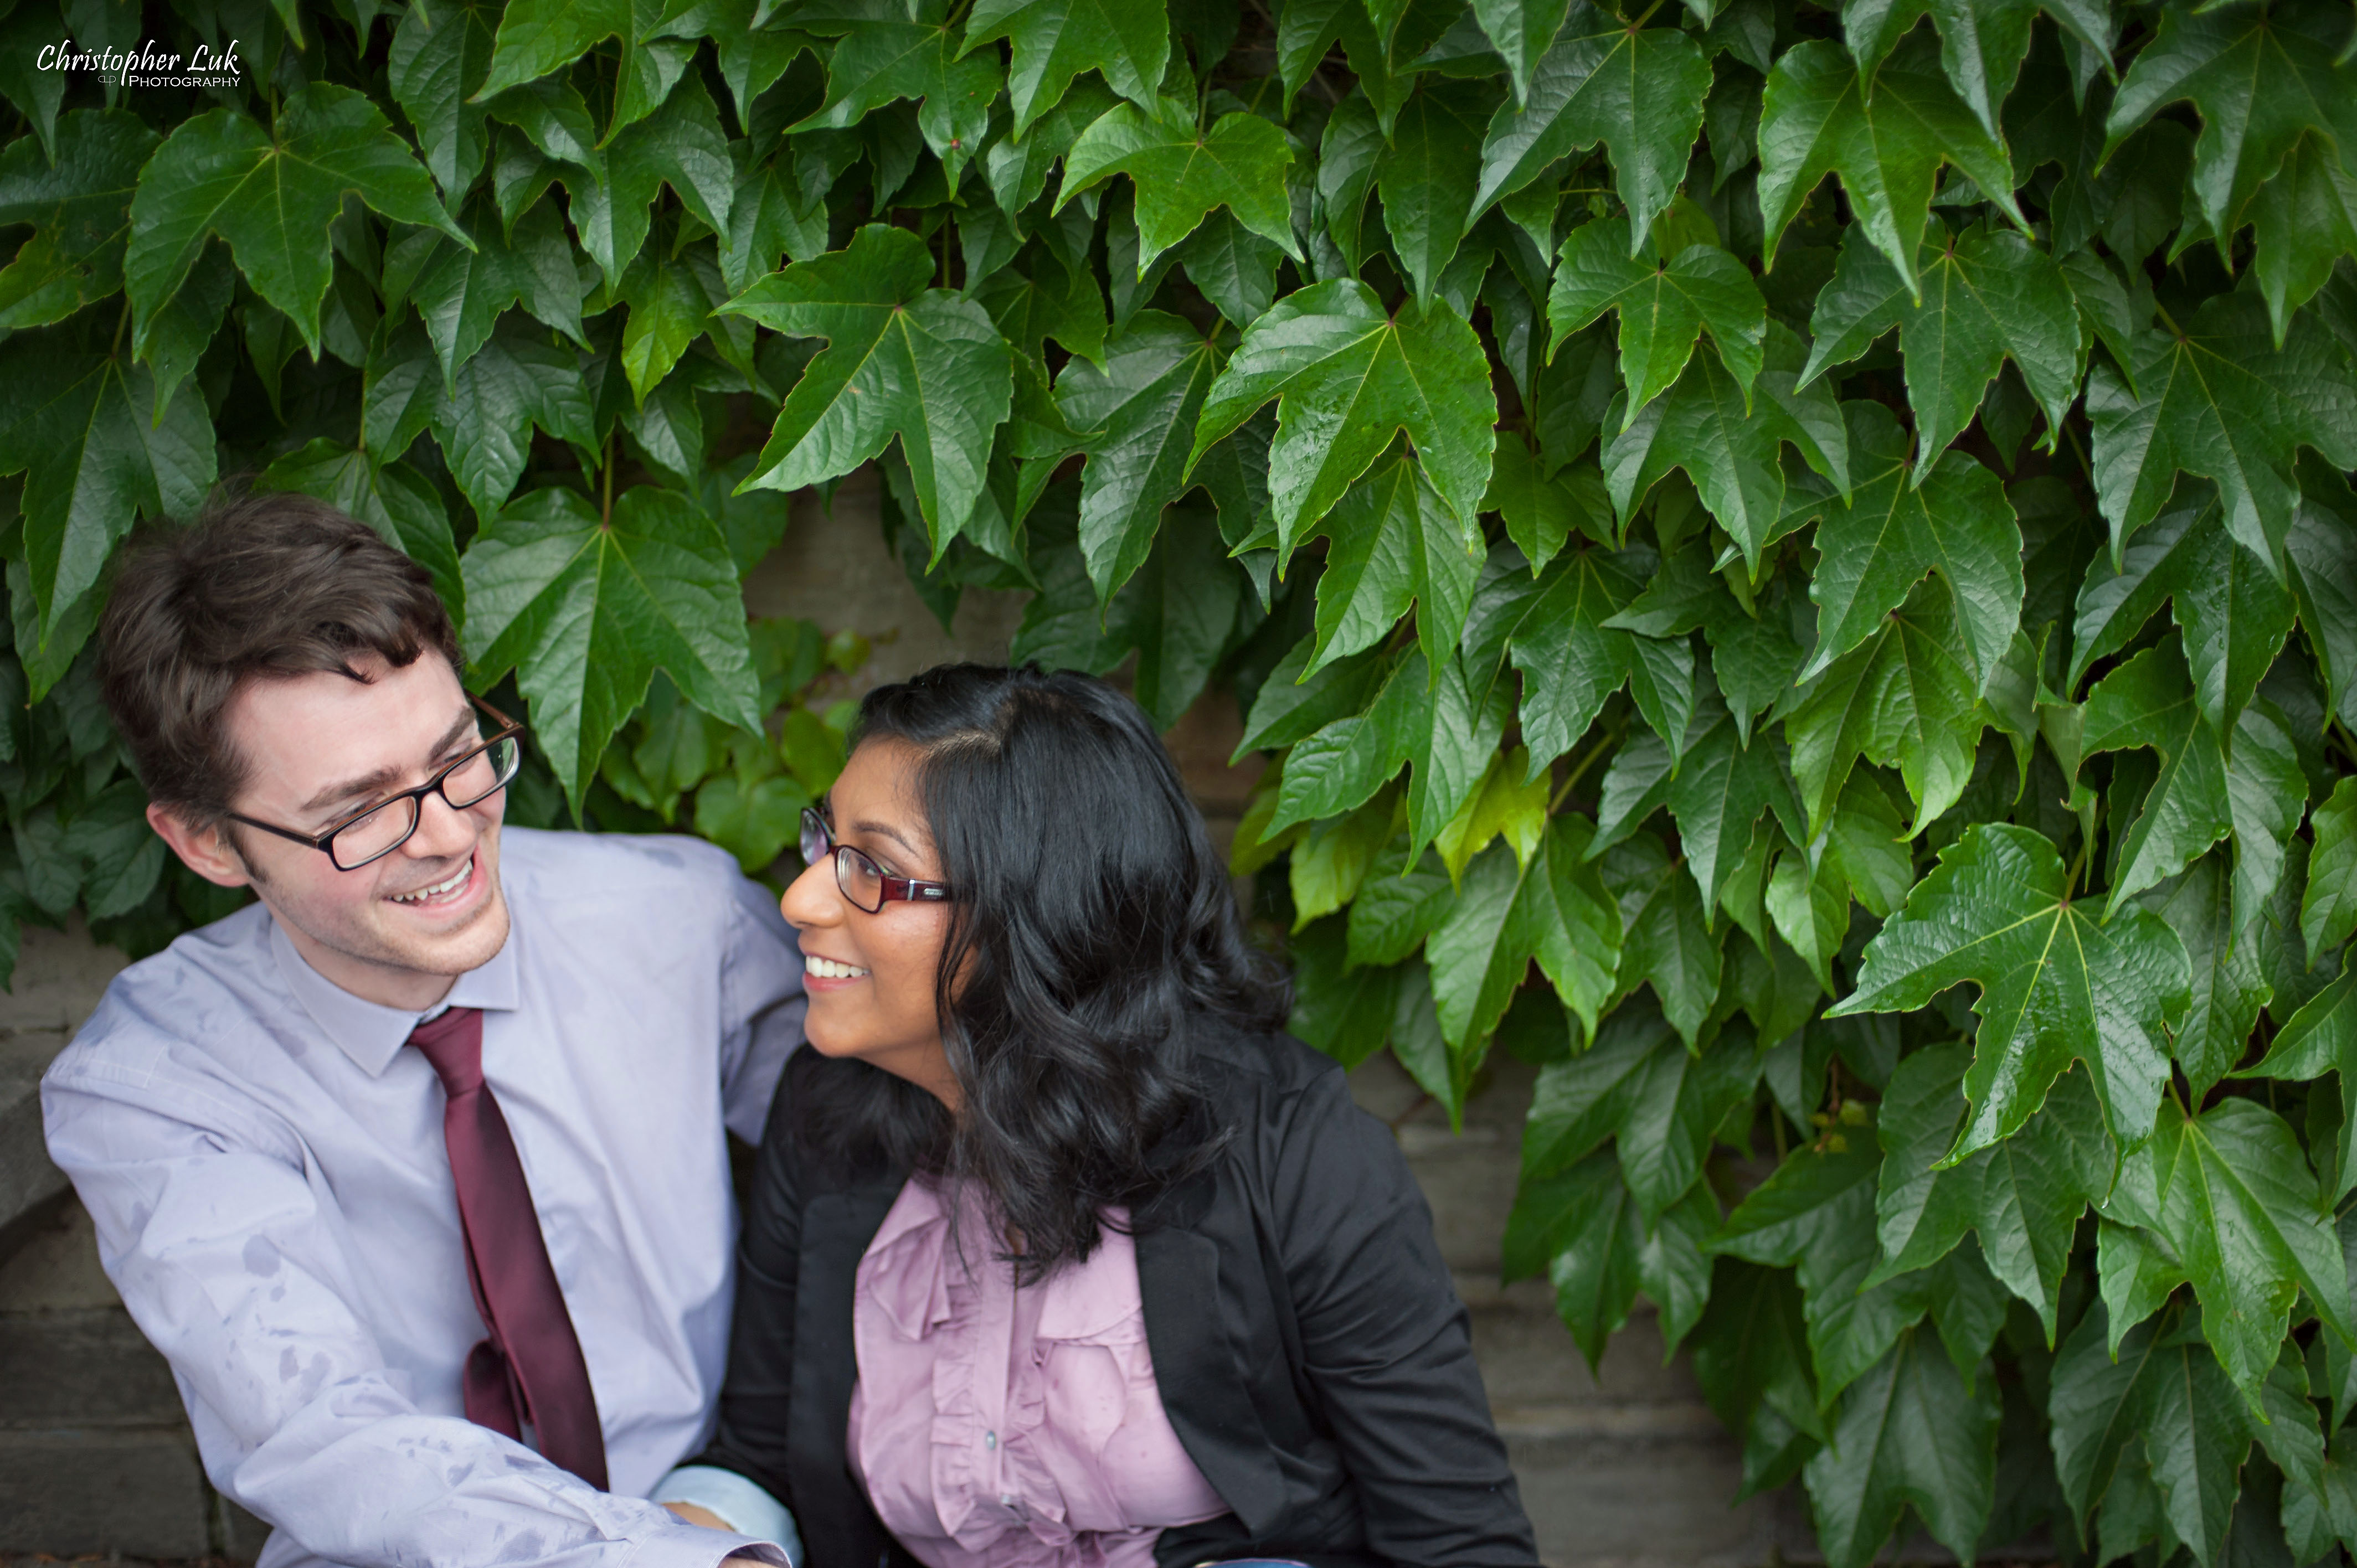 Dinithi and Steve's Engagement Session – University of Toronto – Wedding, Portrait & Event Photographer